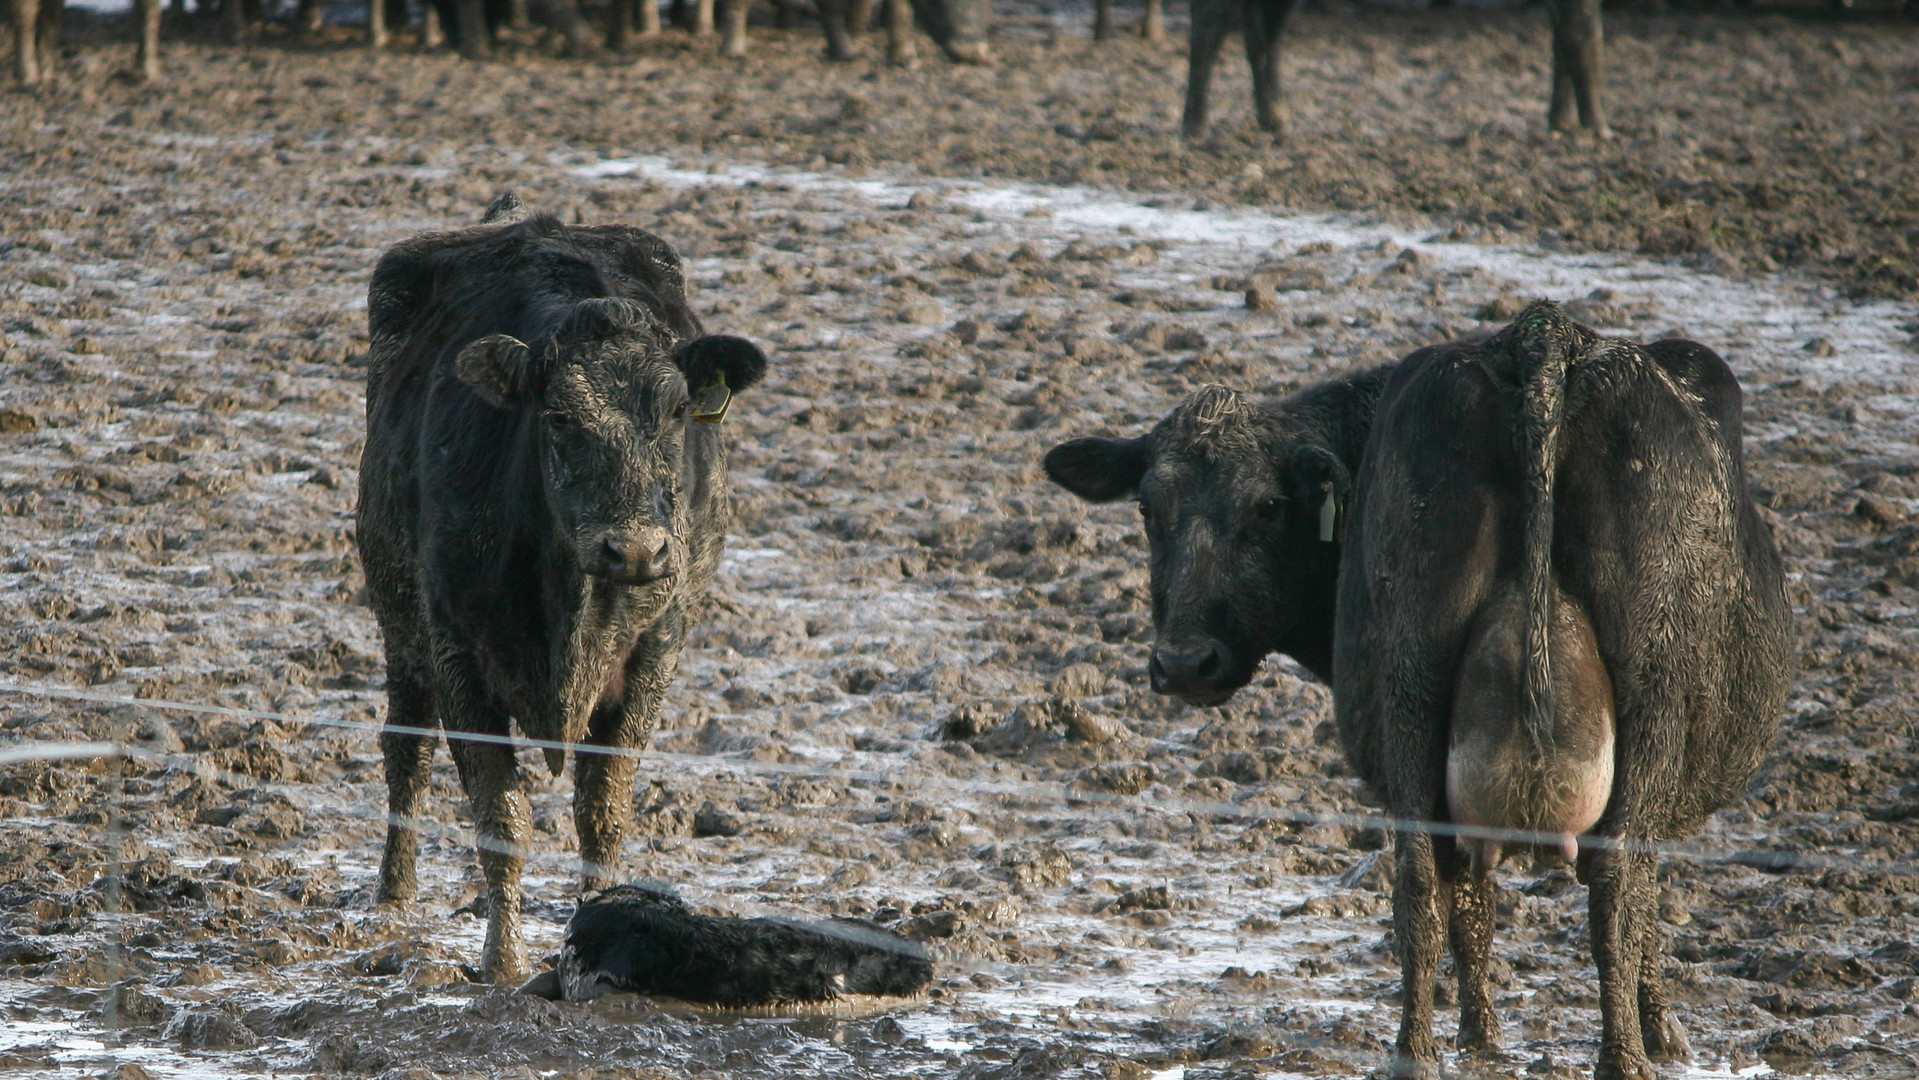 Calves struggle to stand up